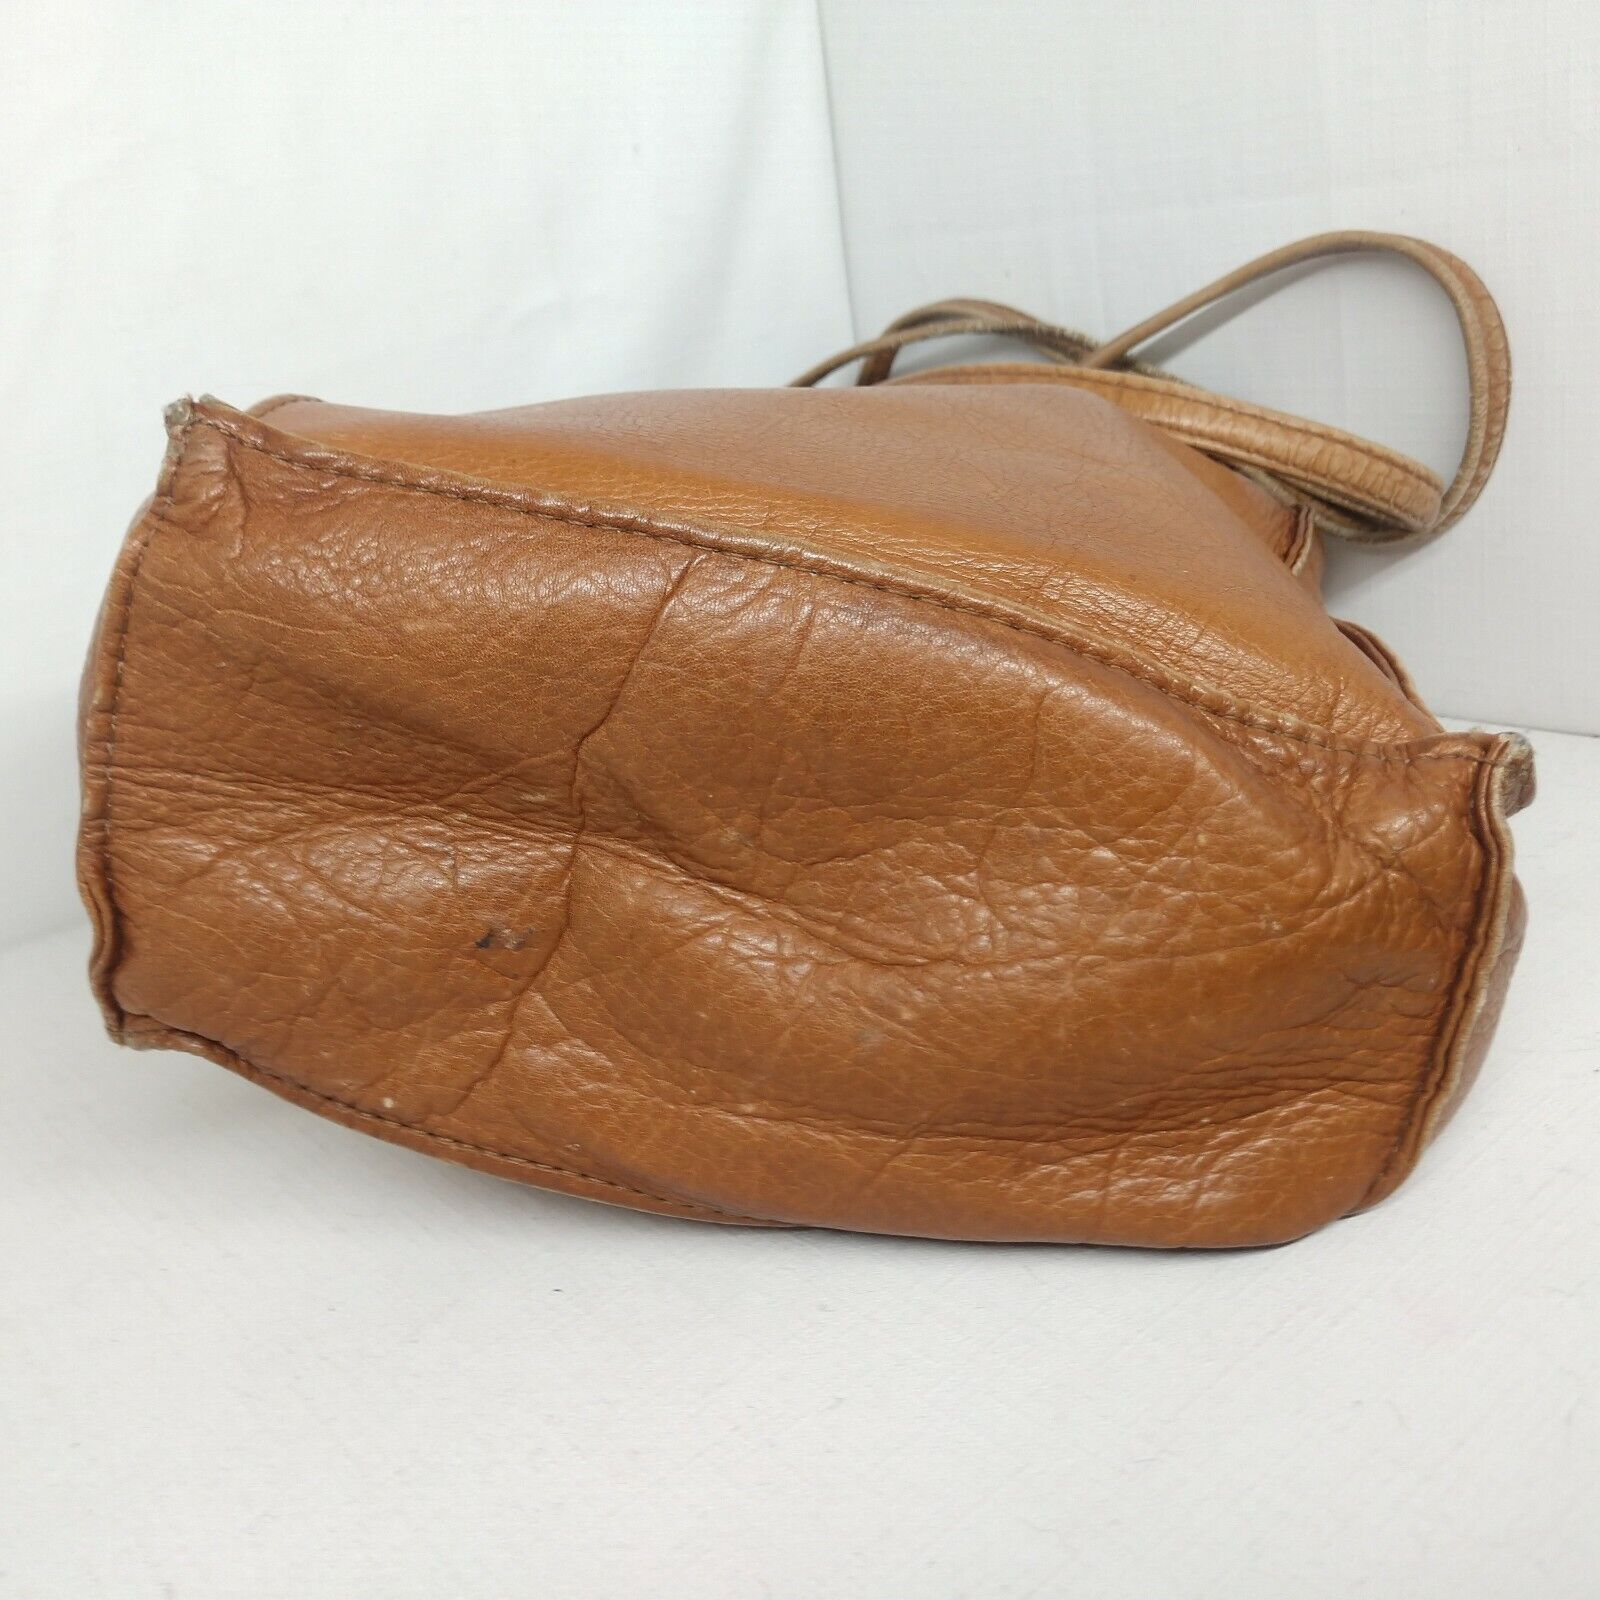 Unbranded Women's Tan Genuine Leather Square Boho… - image 3